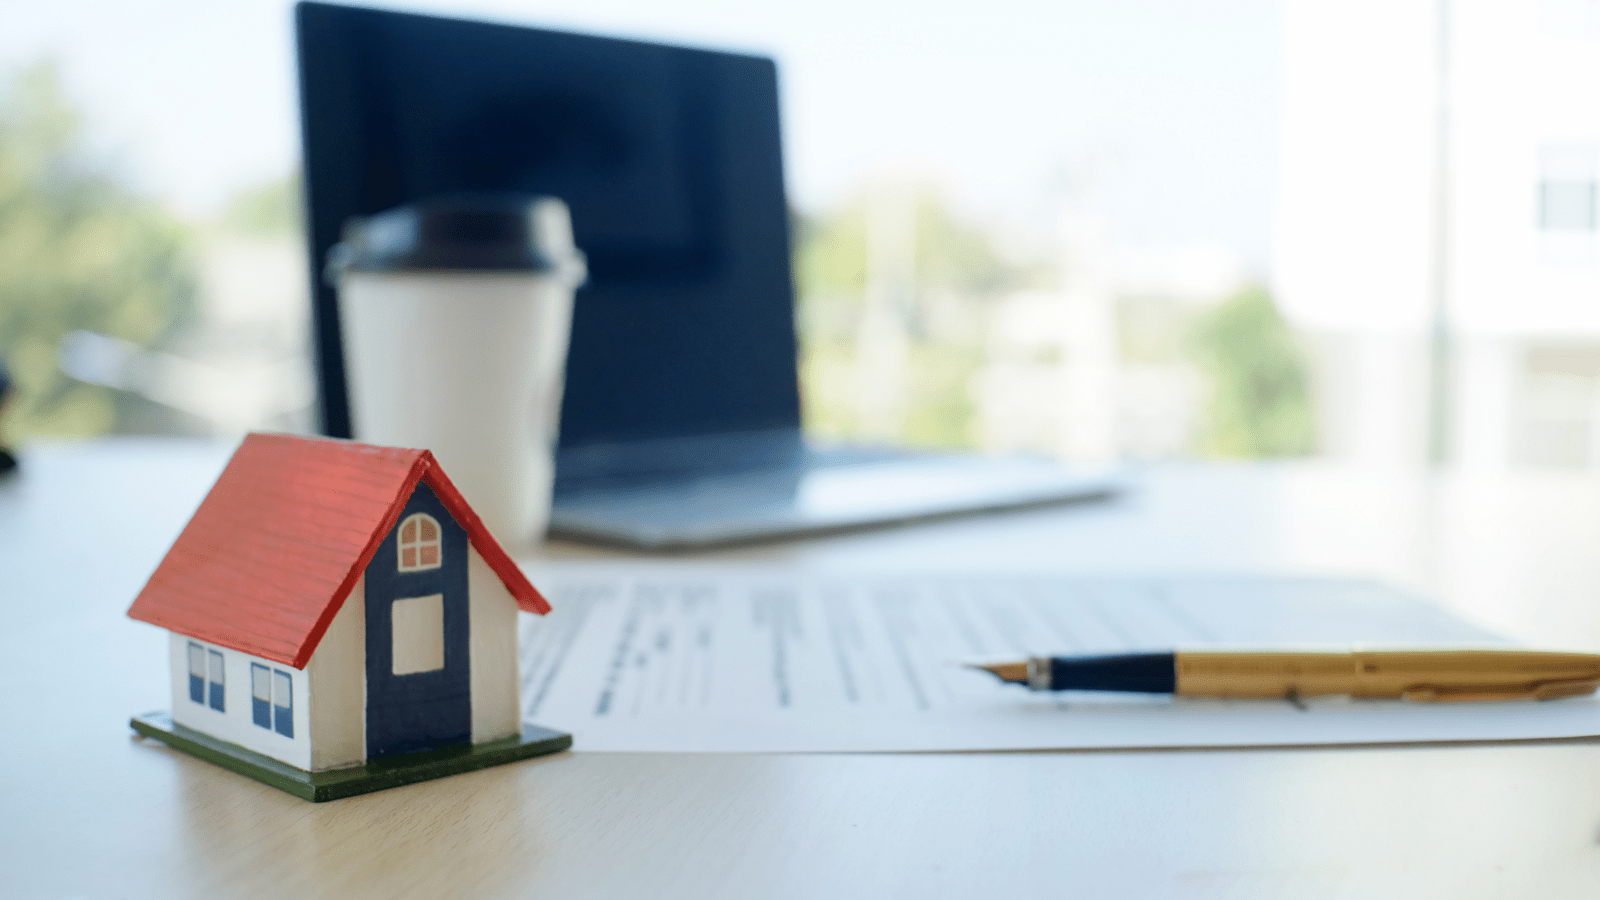 a work space with a laptop, coffee cup, pencil and paper, and miniature house